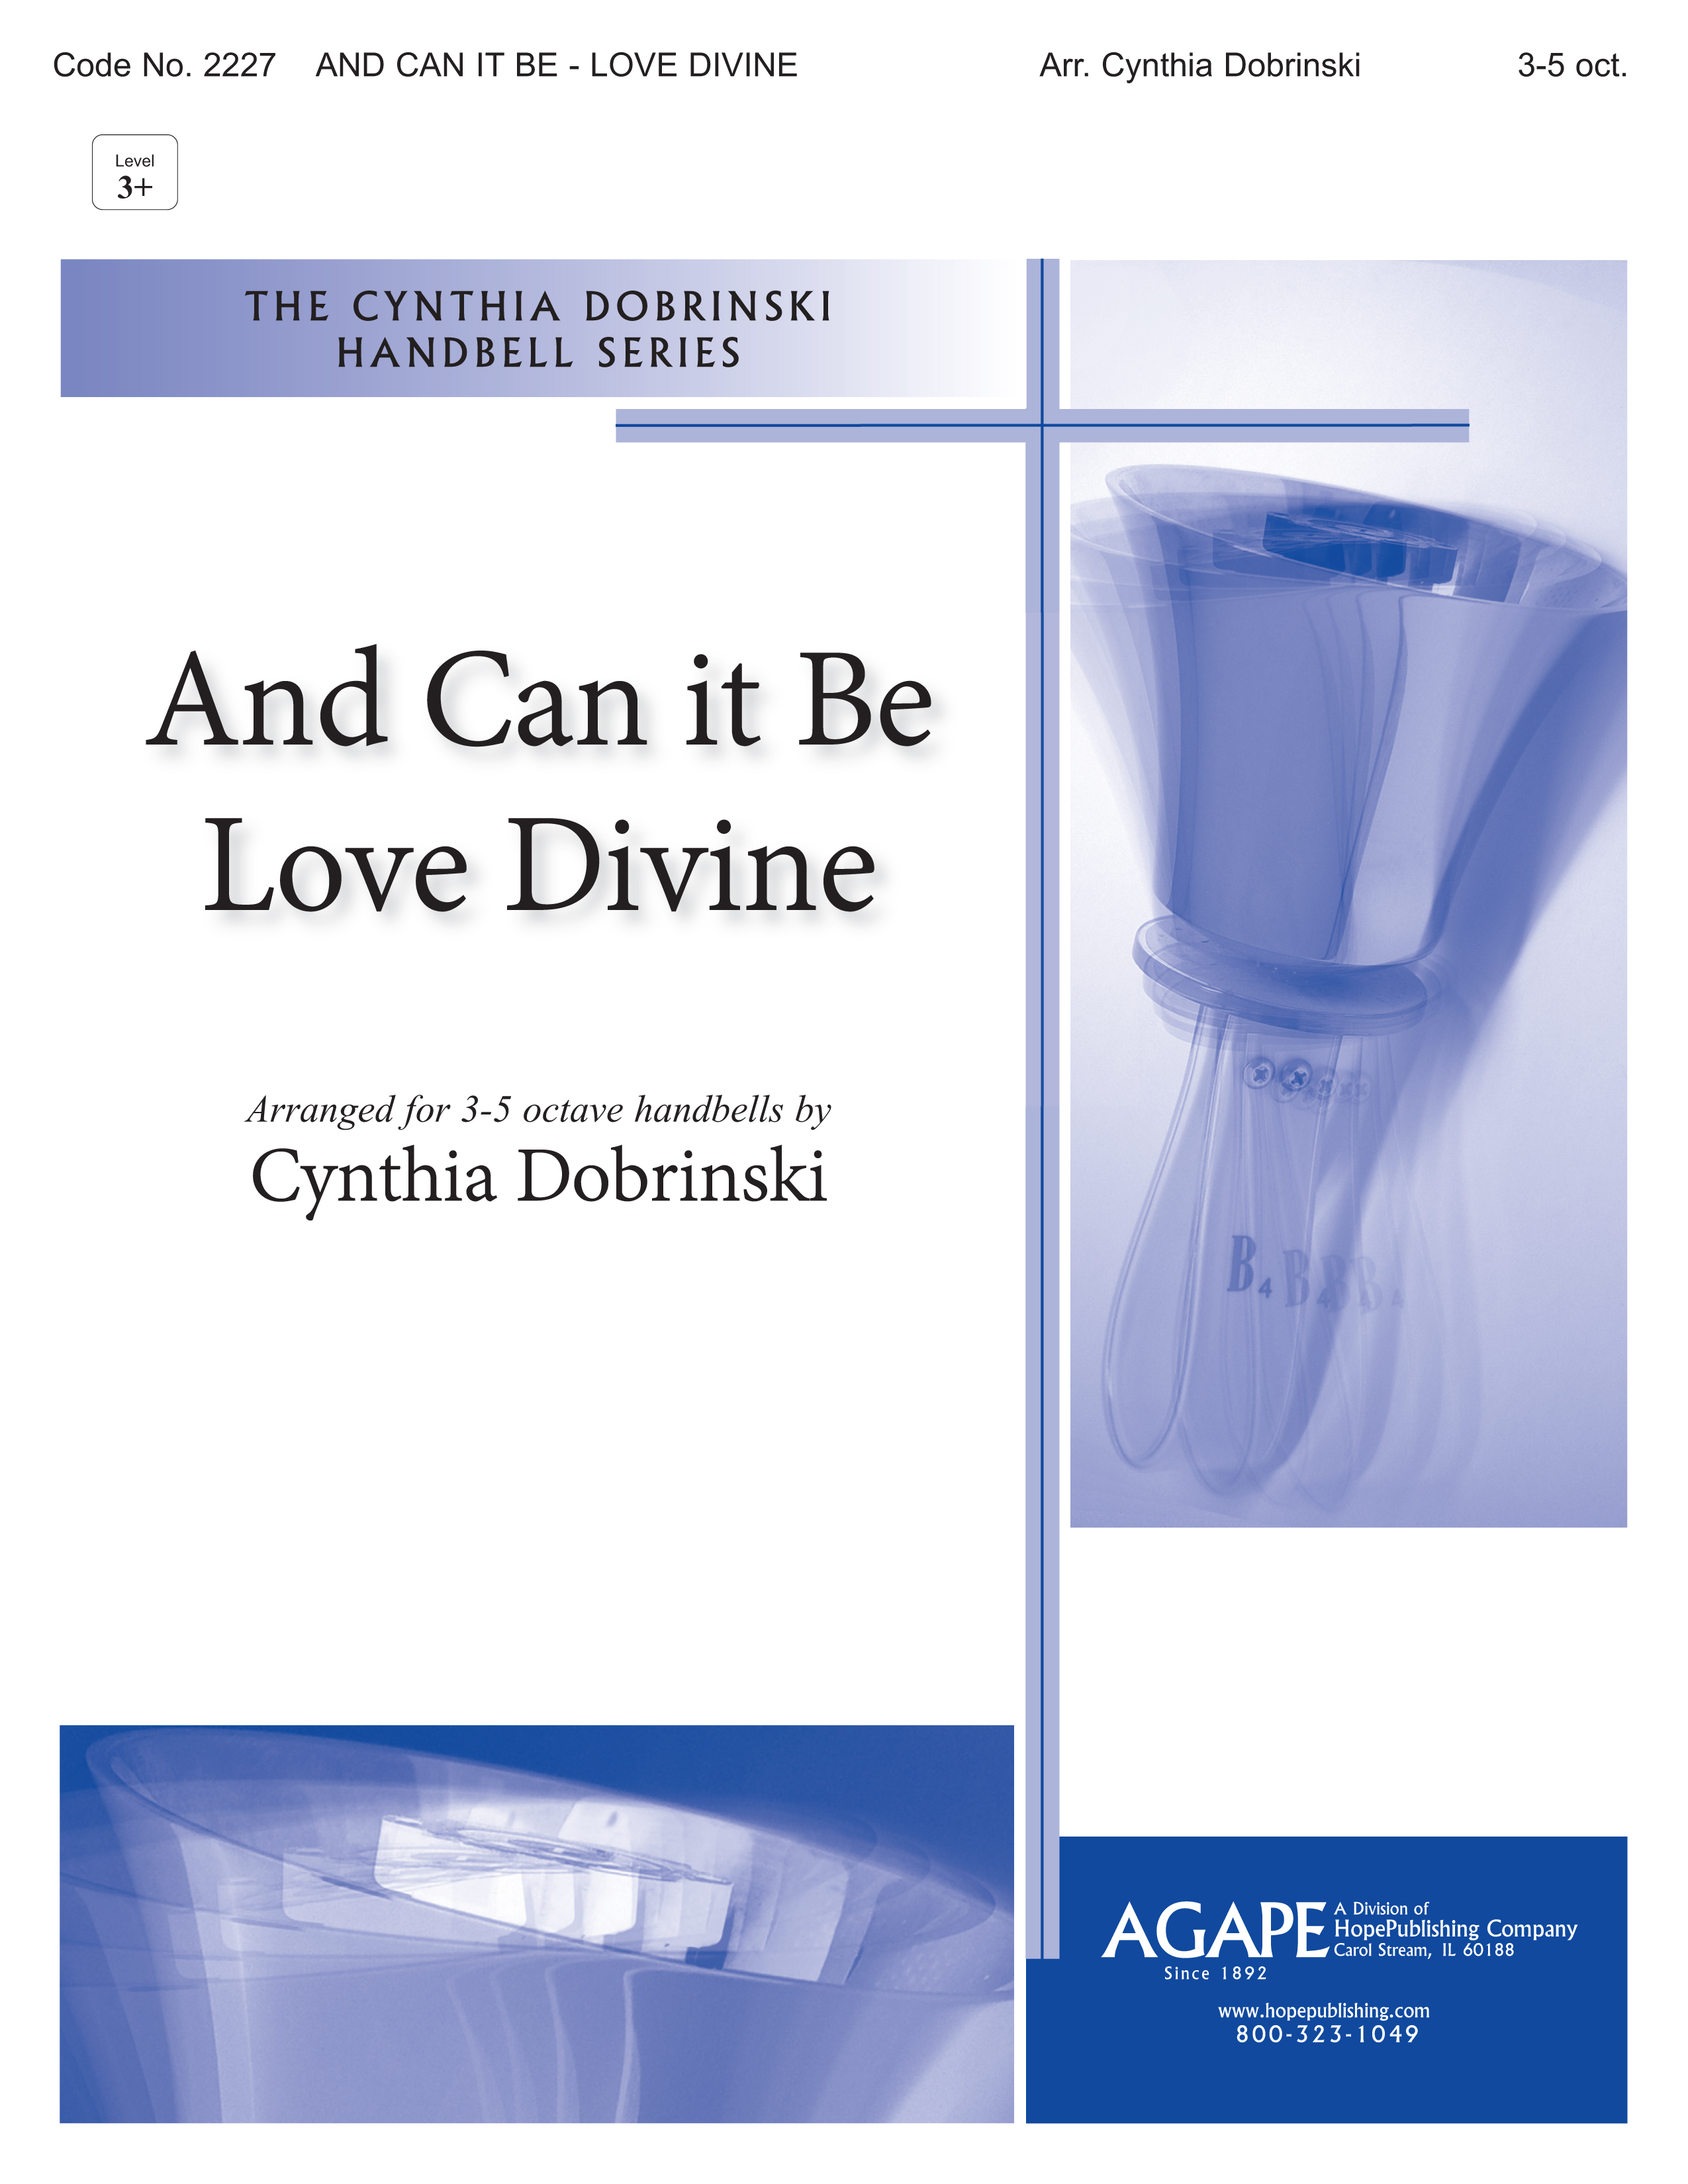 And Can It Be w-Love Divine - 3-5 Octave Cover Image